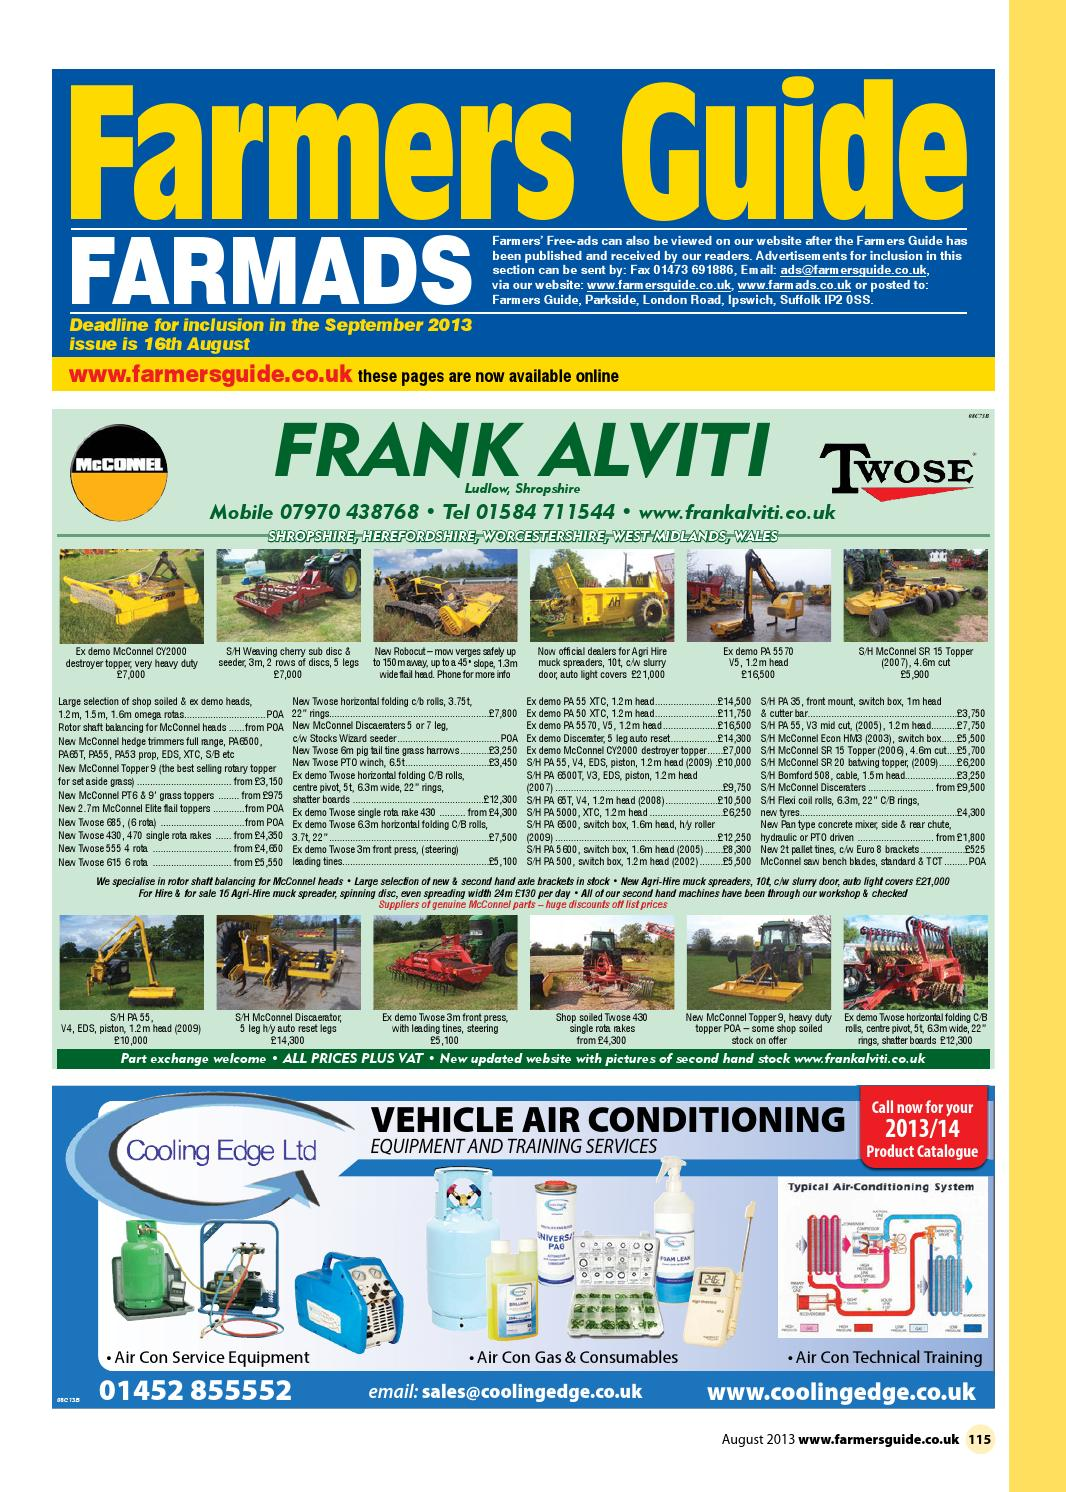 Farmers Guide classified section - August 2013 by Farmers Guide - issuu